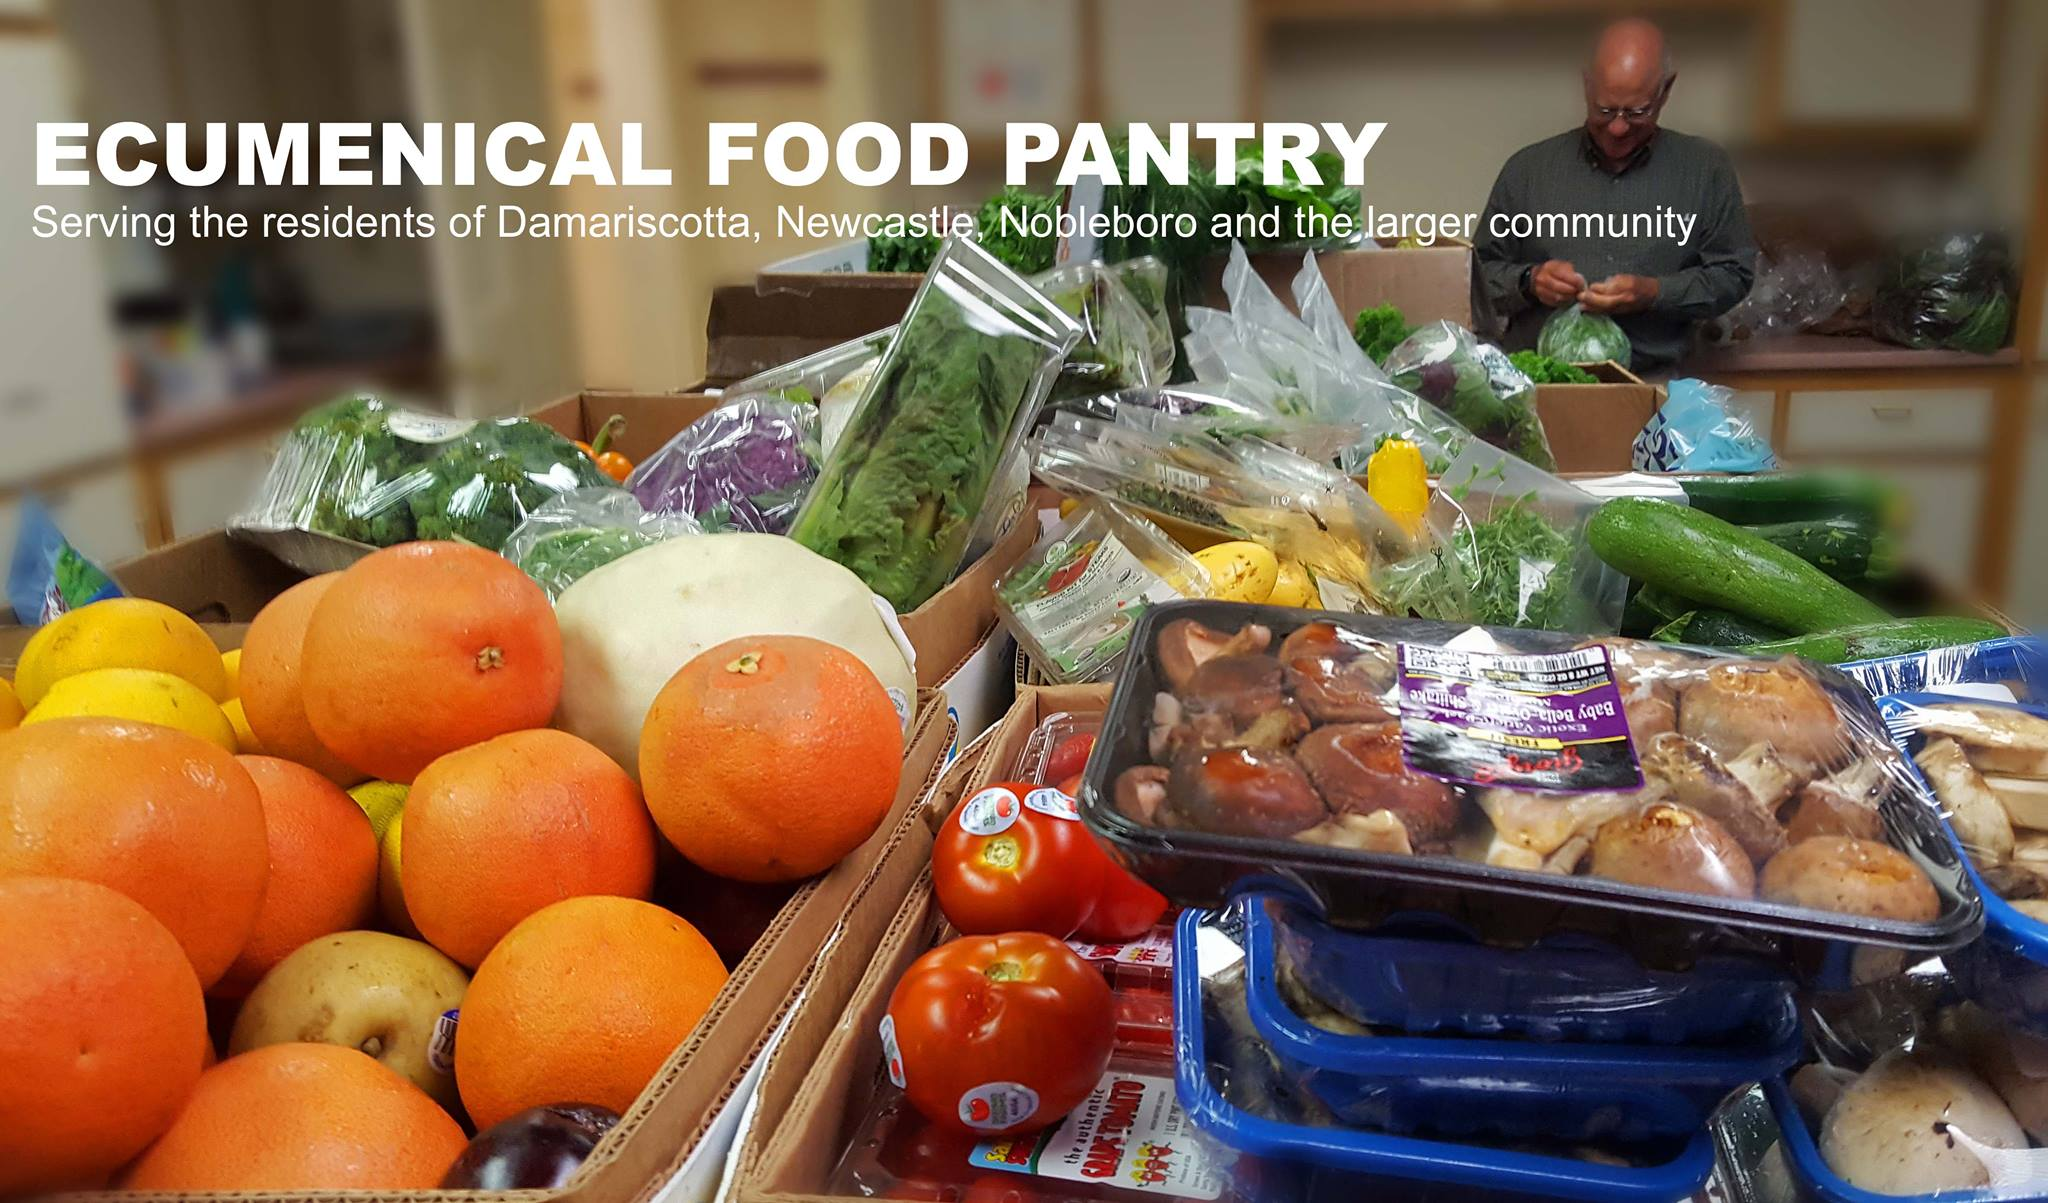 Ecumenical Food Pantry